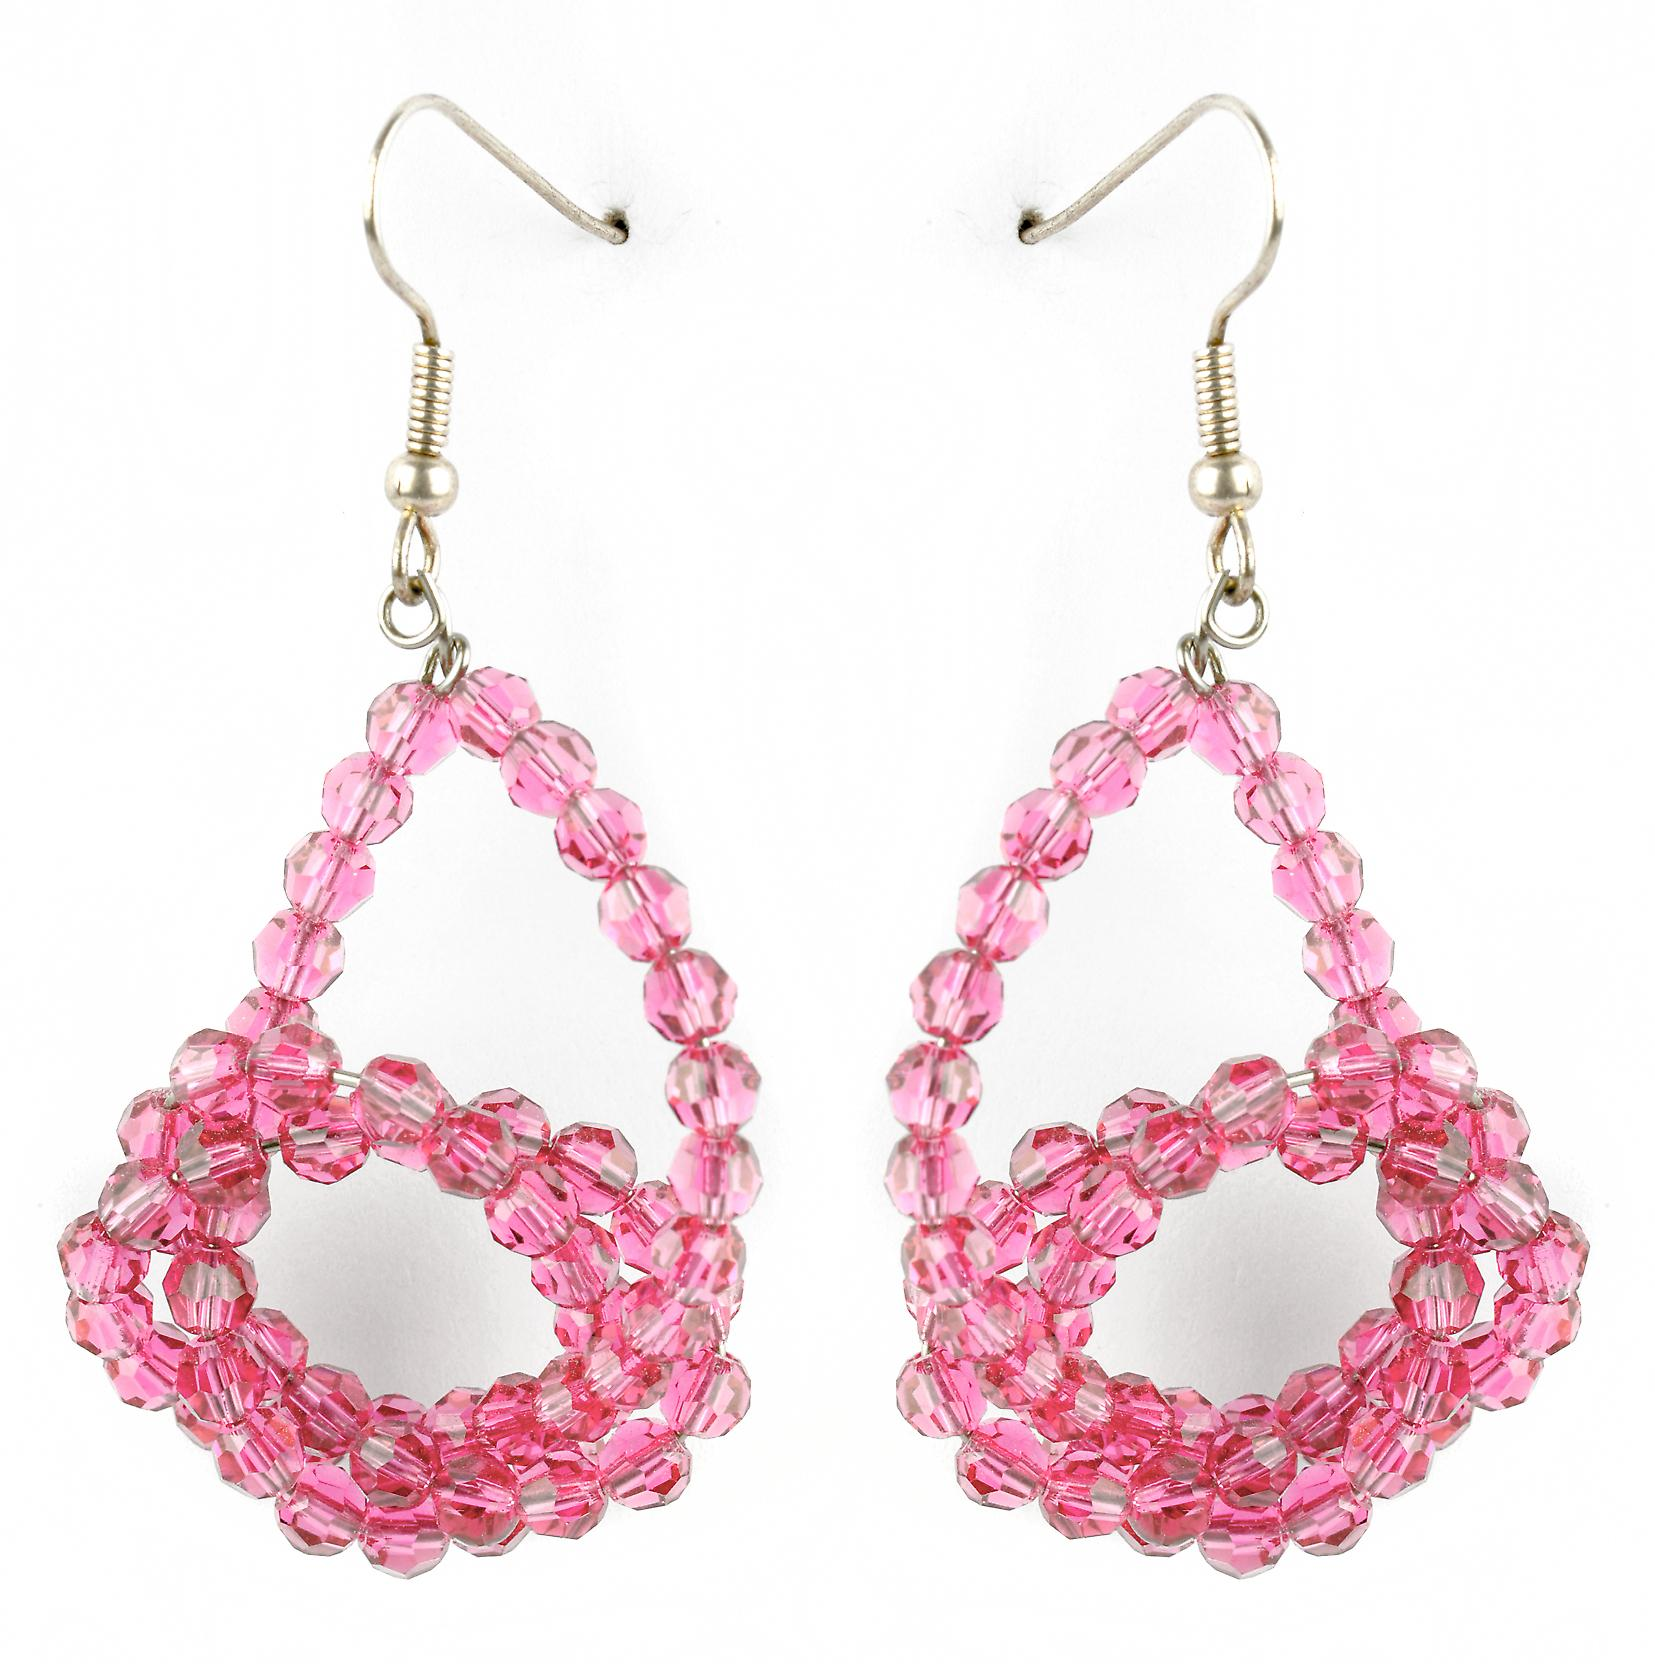 Waooh - Fashion Jewellery - WJ0749 - D'Oreille earrings with Swarovski Strass Rose Transparent - Frame Colour Silver